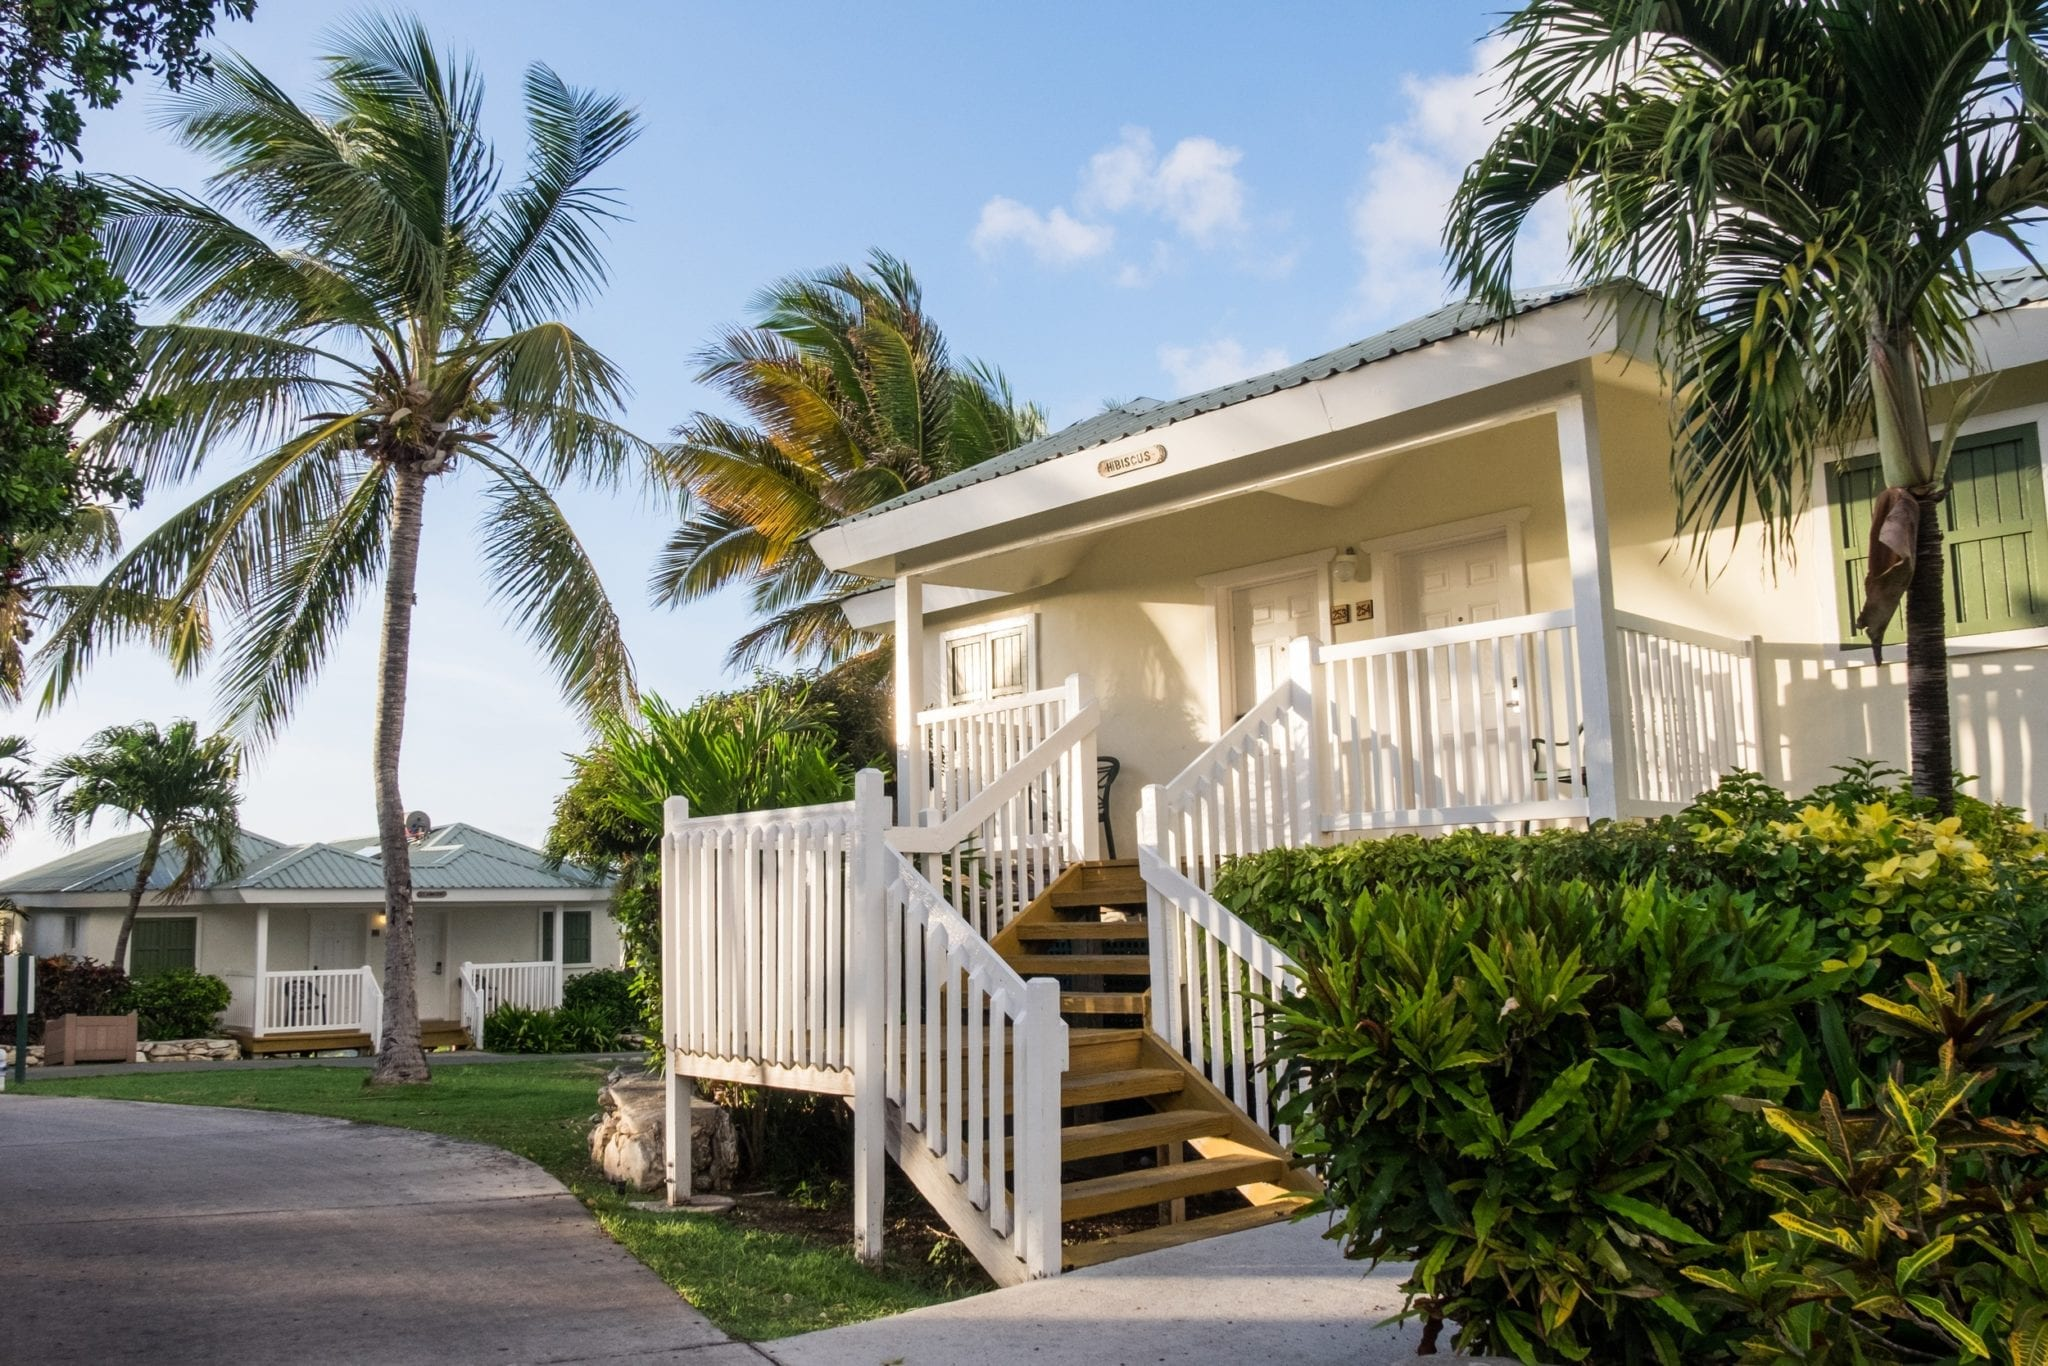 A small White House with picket fencing along the staircase leading upward, surrounded by palm trees underneath a blue sky.